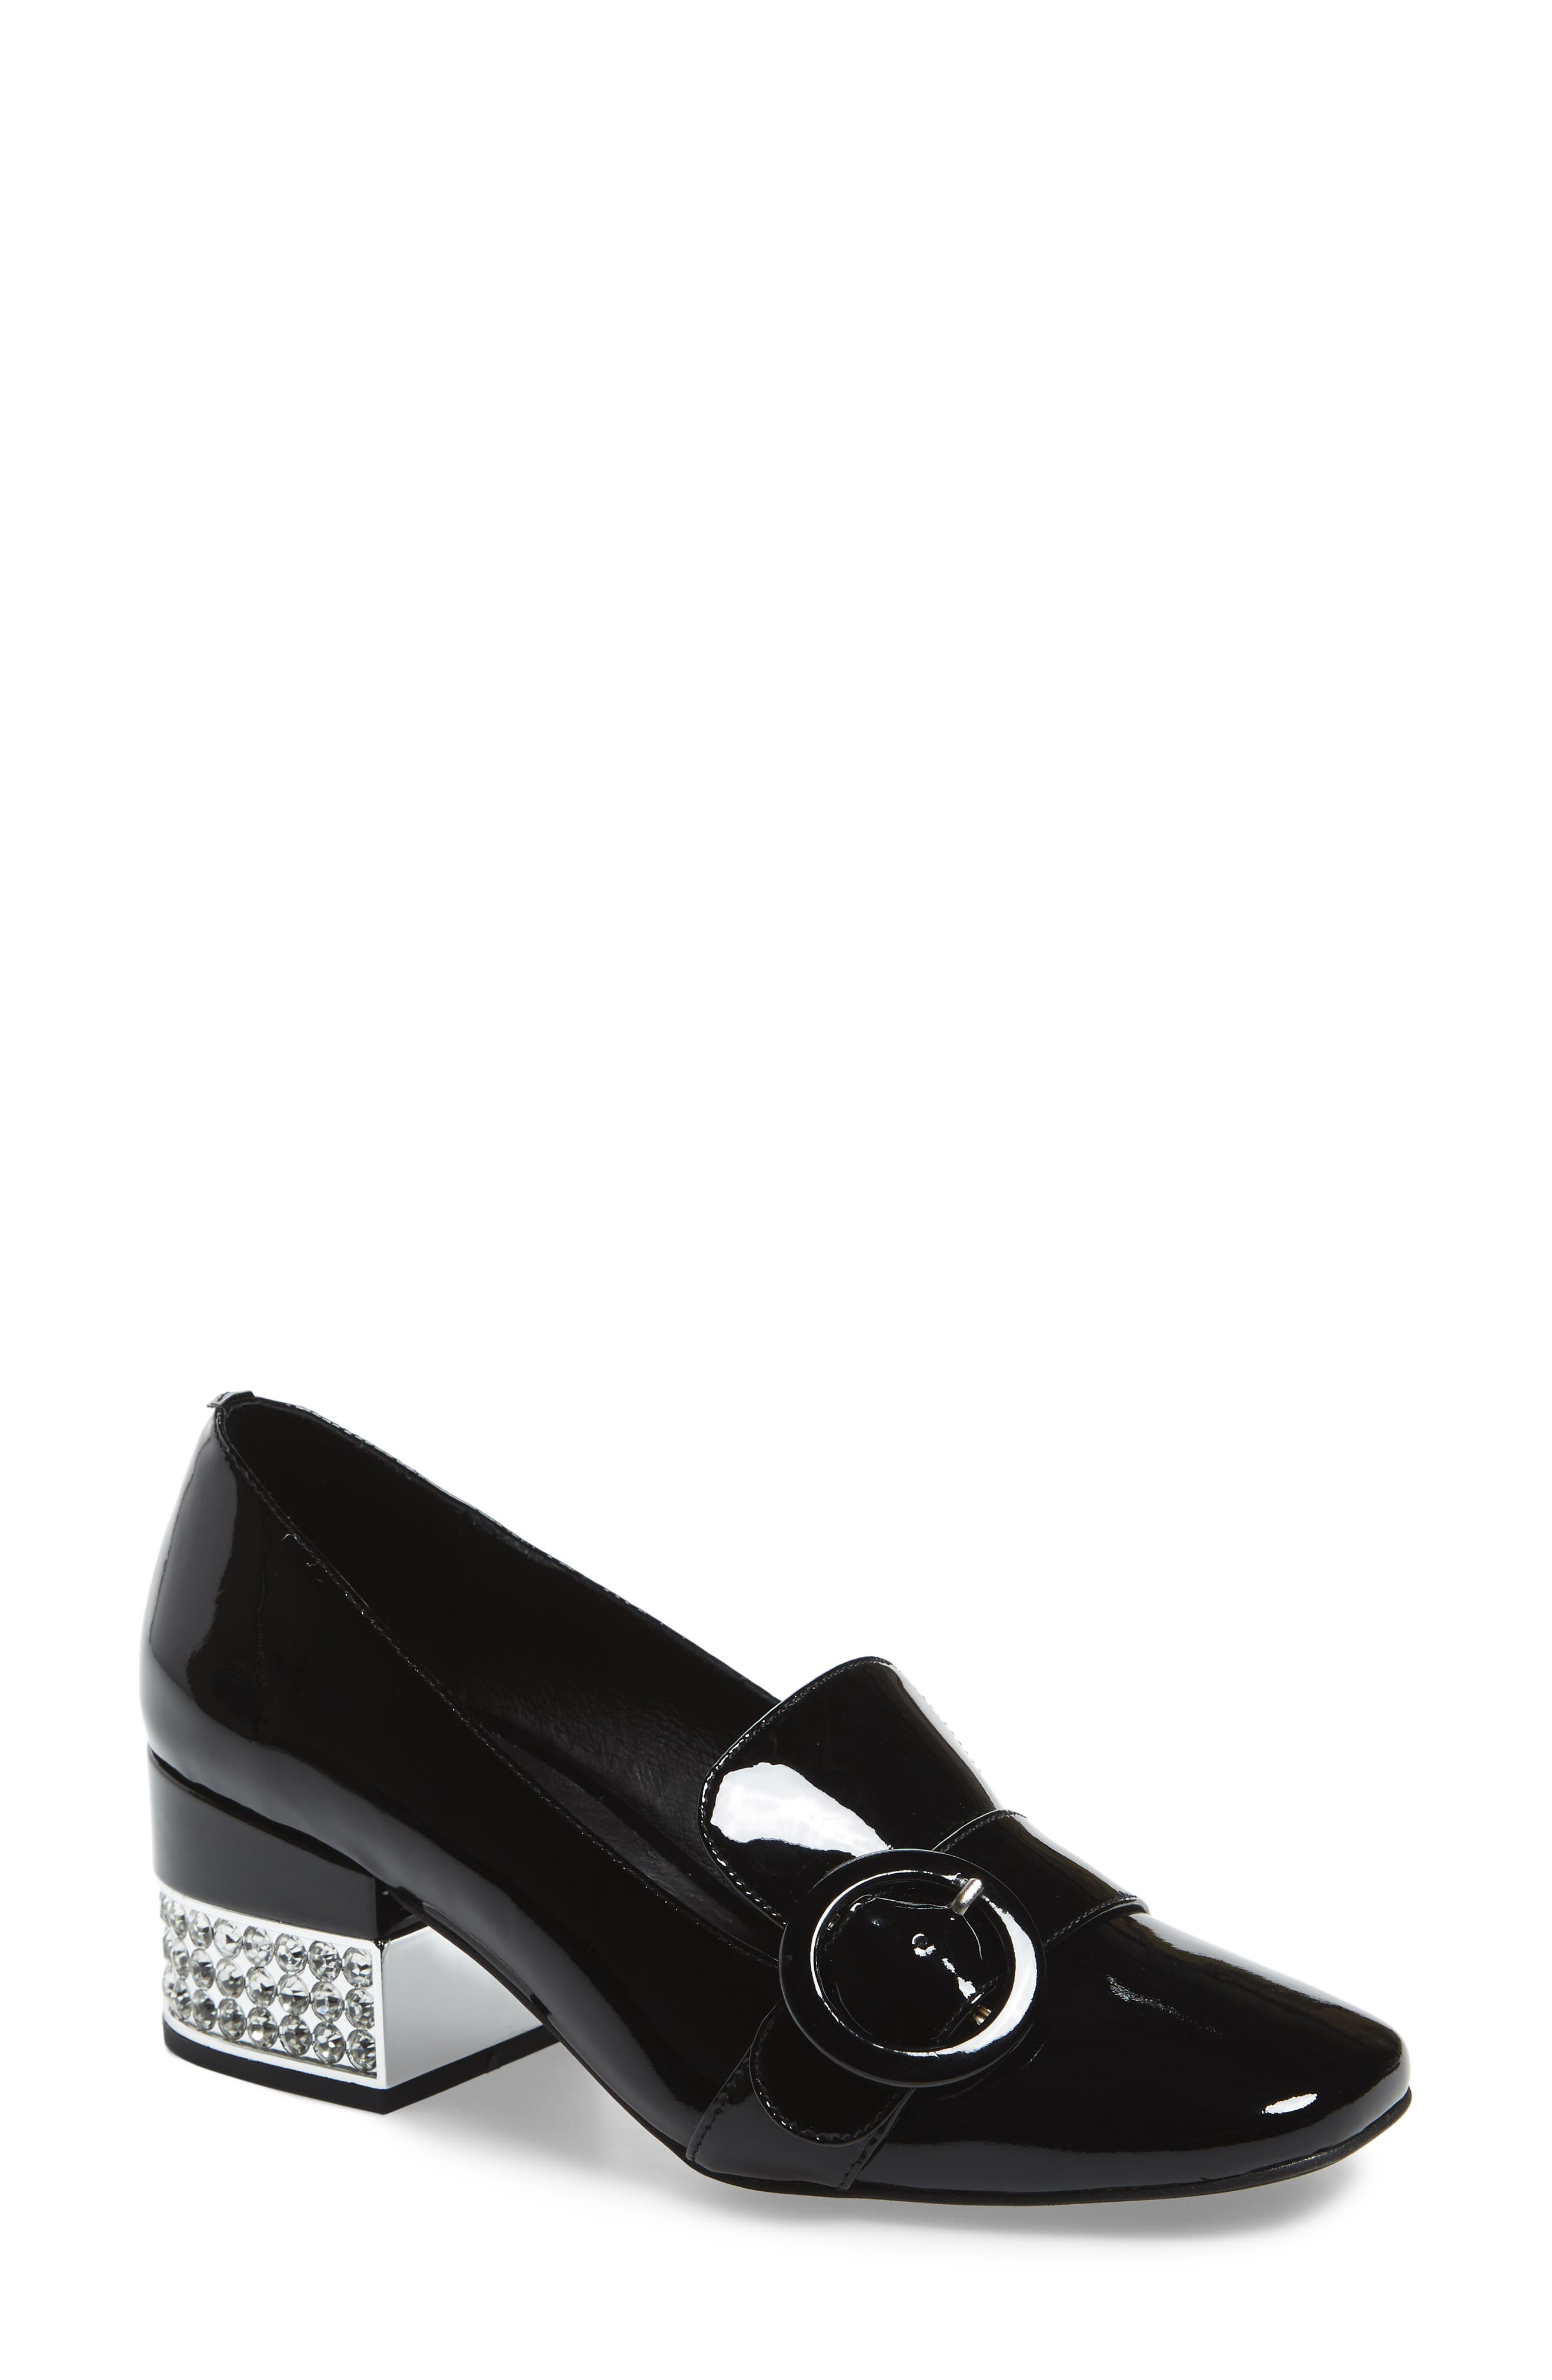 Louisa Pump,                         Main,                         color, BLACK/ SILVER PATENT LEATHER